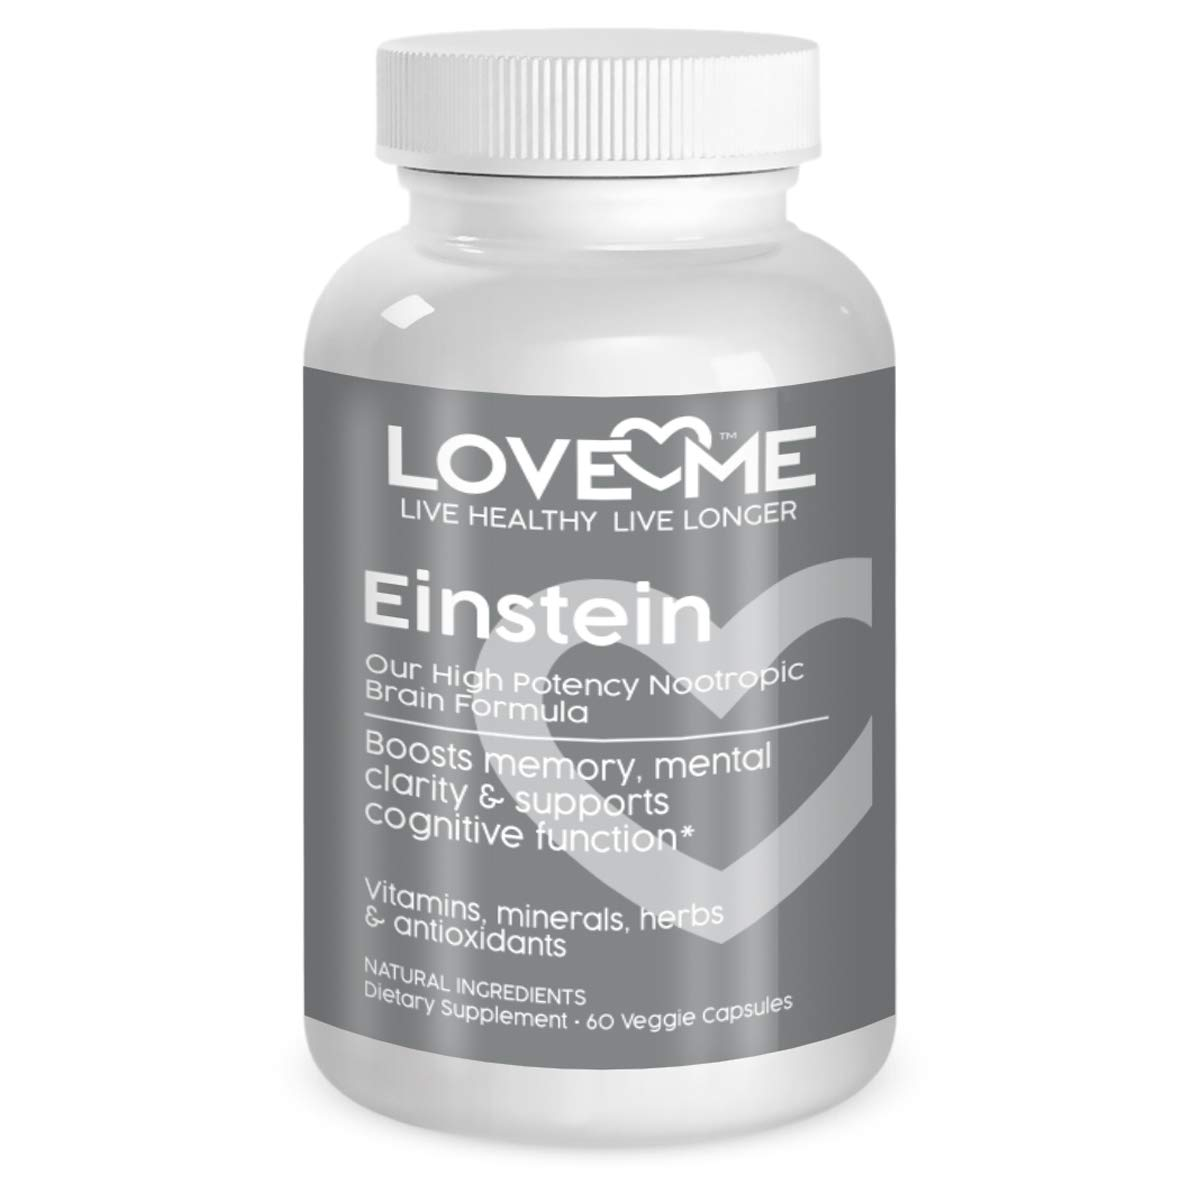 Love Me Nutrition – Einstein – Brain Nootropic Formula Men Woman. Minerals, Herbs, Antioxidants Amino Acids. Memory Mental Focus Clarity. Natural No Artificial Ingredients 60 Vegi Caps